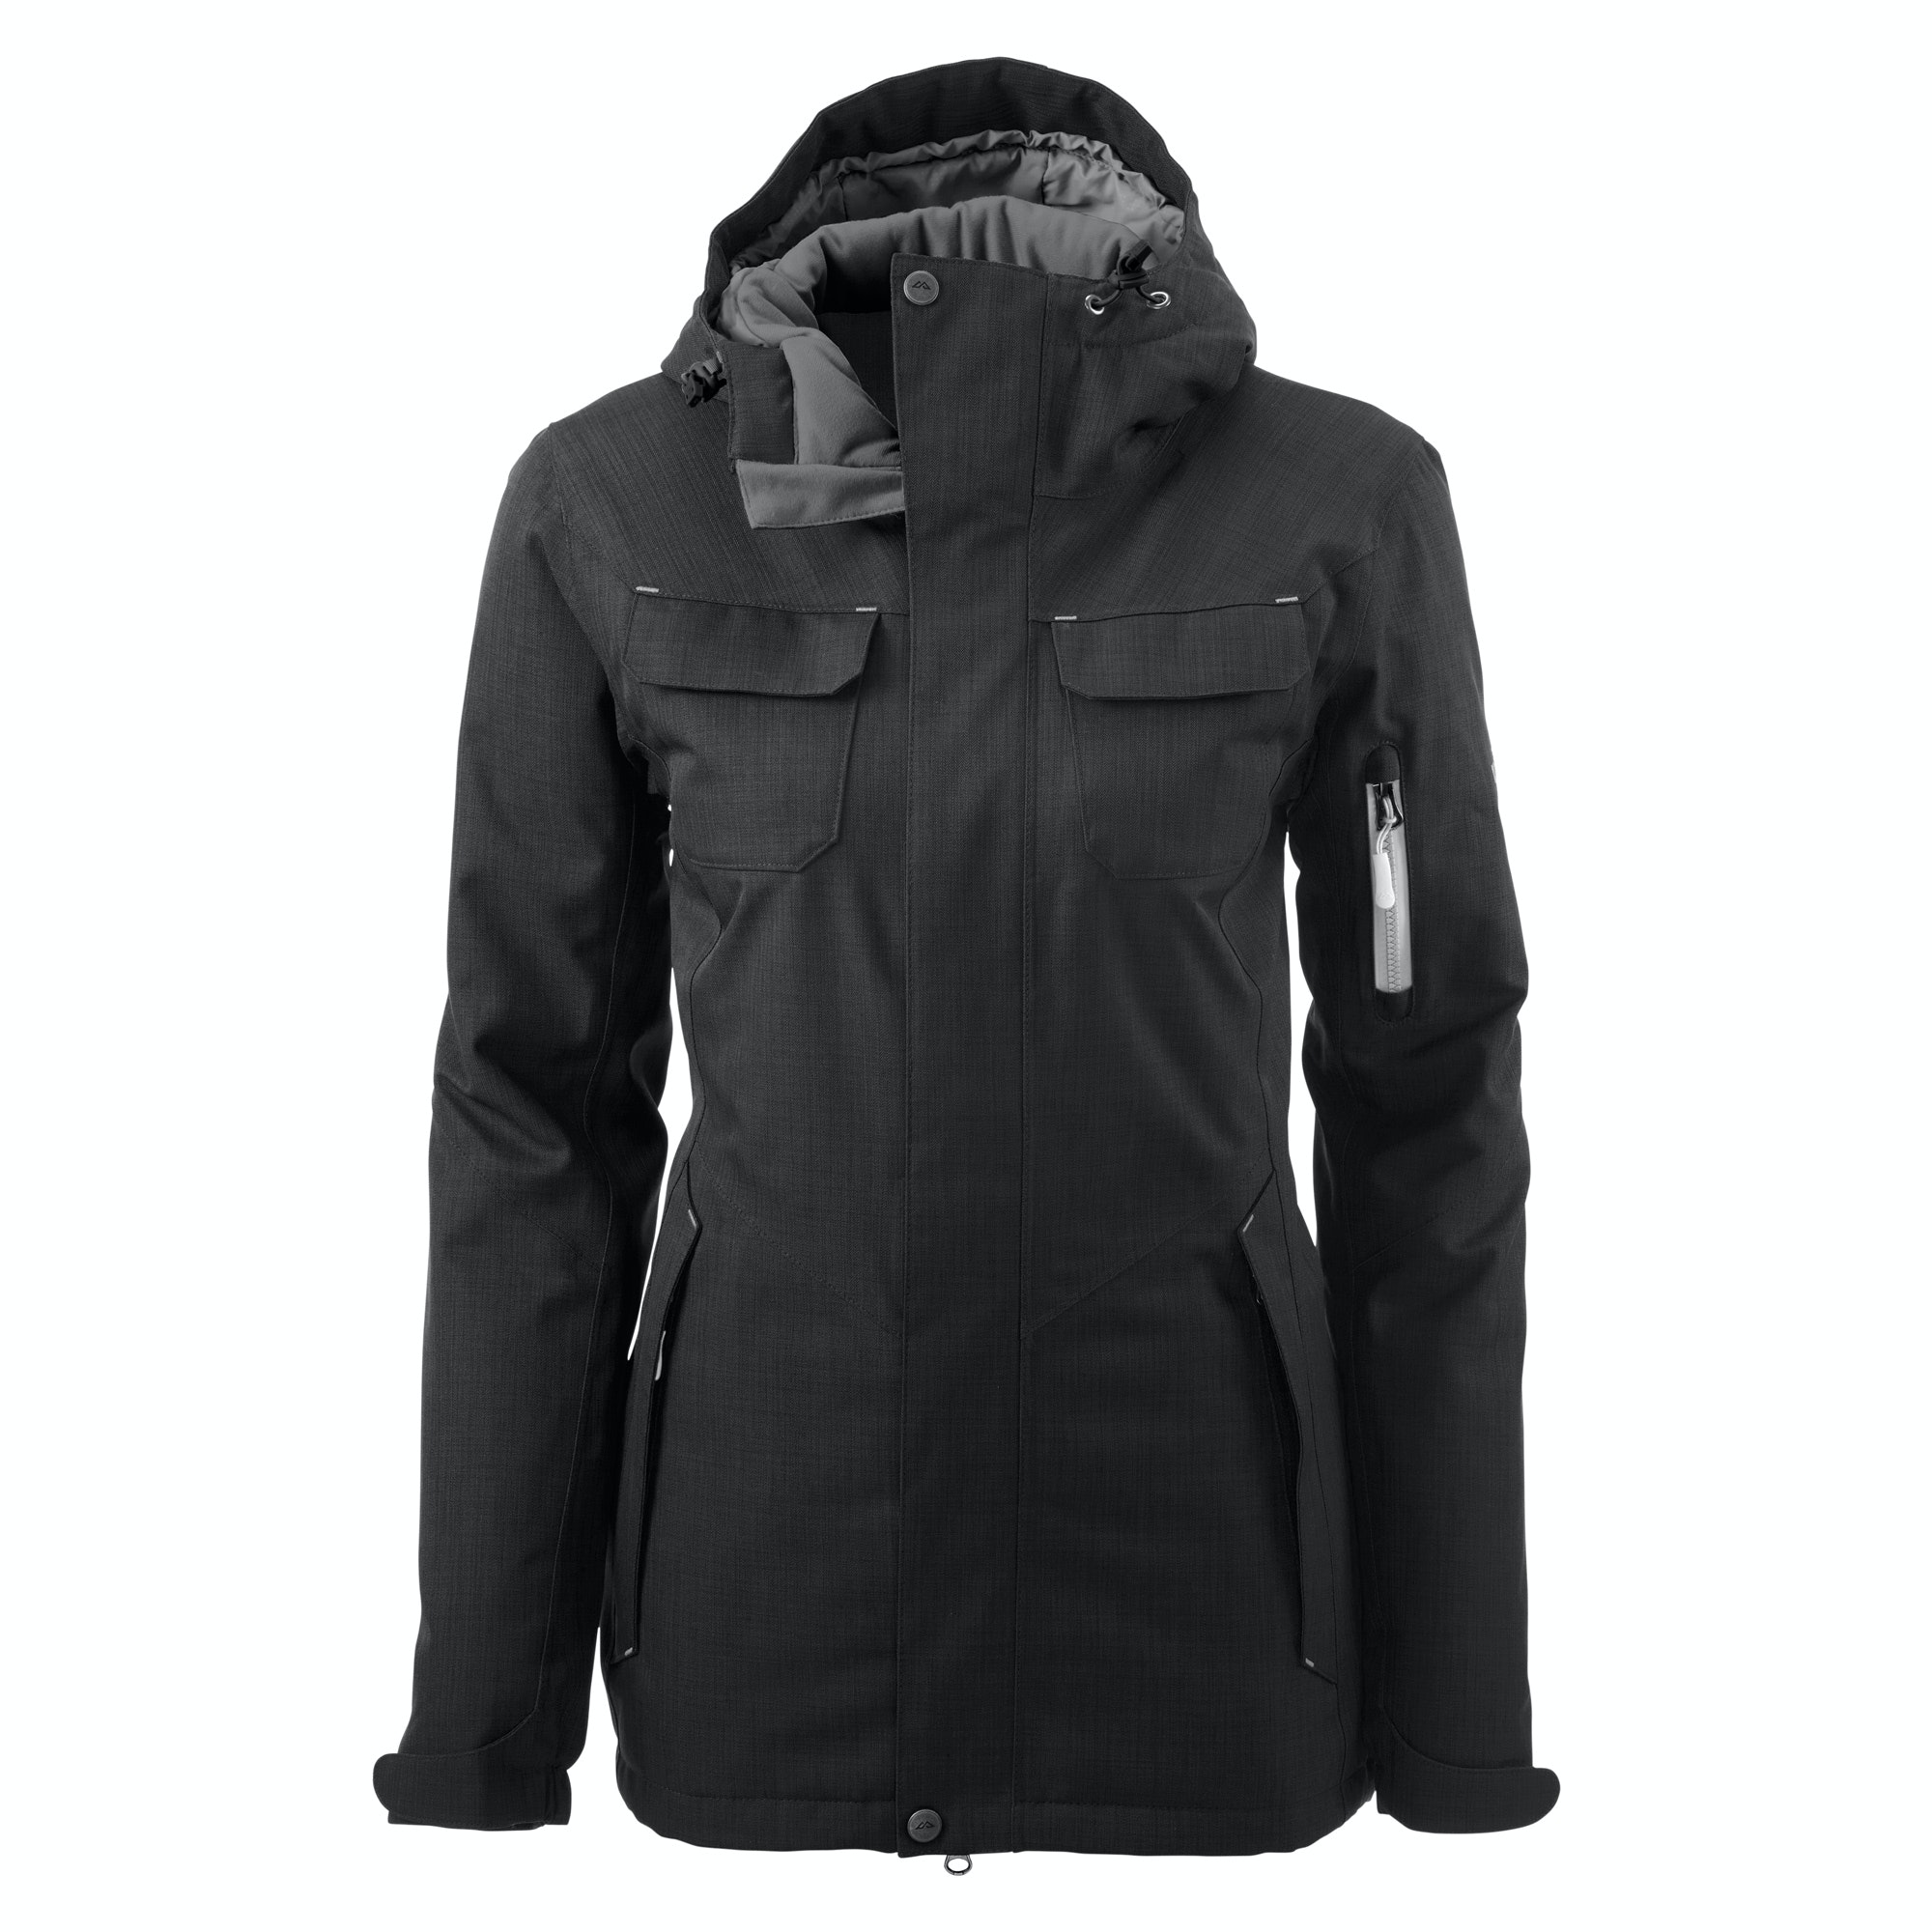 Stromsdal Women's 2 Layer Waterproof Snow Sport Jacket v3 - Black